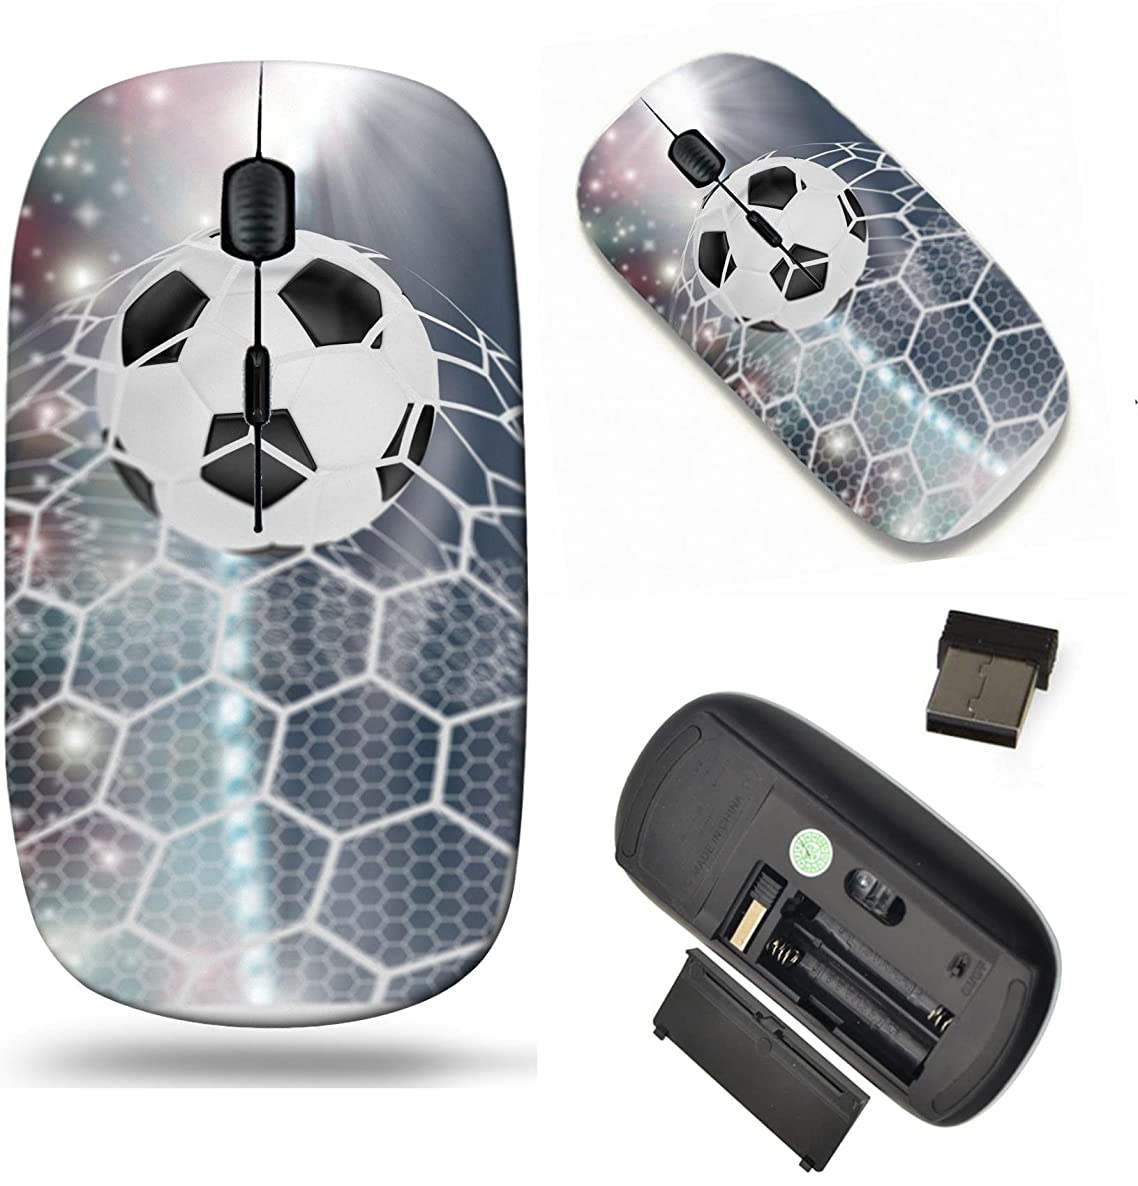 MSD Wireless Mouse Travel 2.4G Wireless Mice with USB Receiver, Noiseless and Silent Click with 1000 DPI for Notebook, pc, Laptop, Computer, mac Book Design: 34862146 Soccer Ball in Goal net